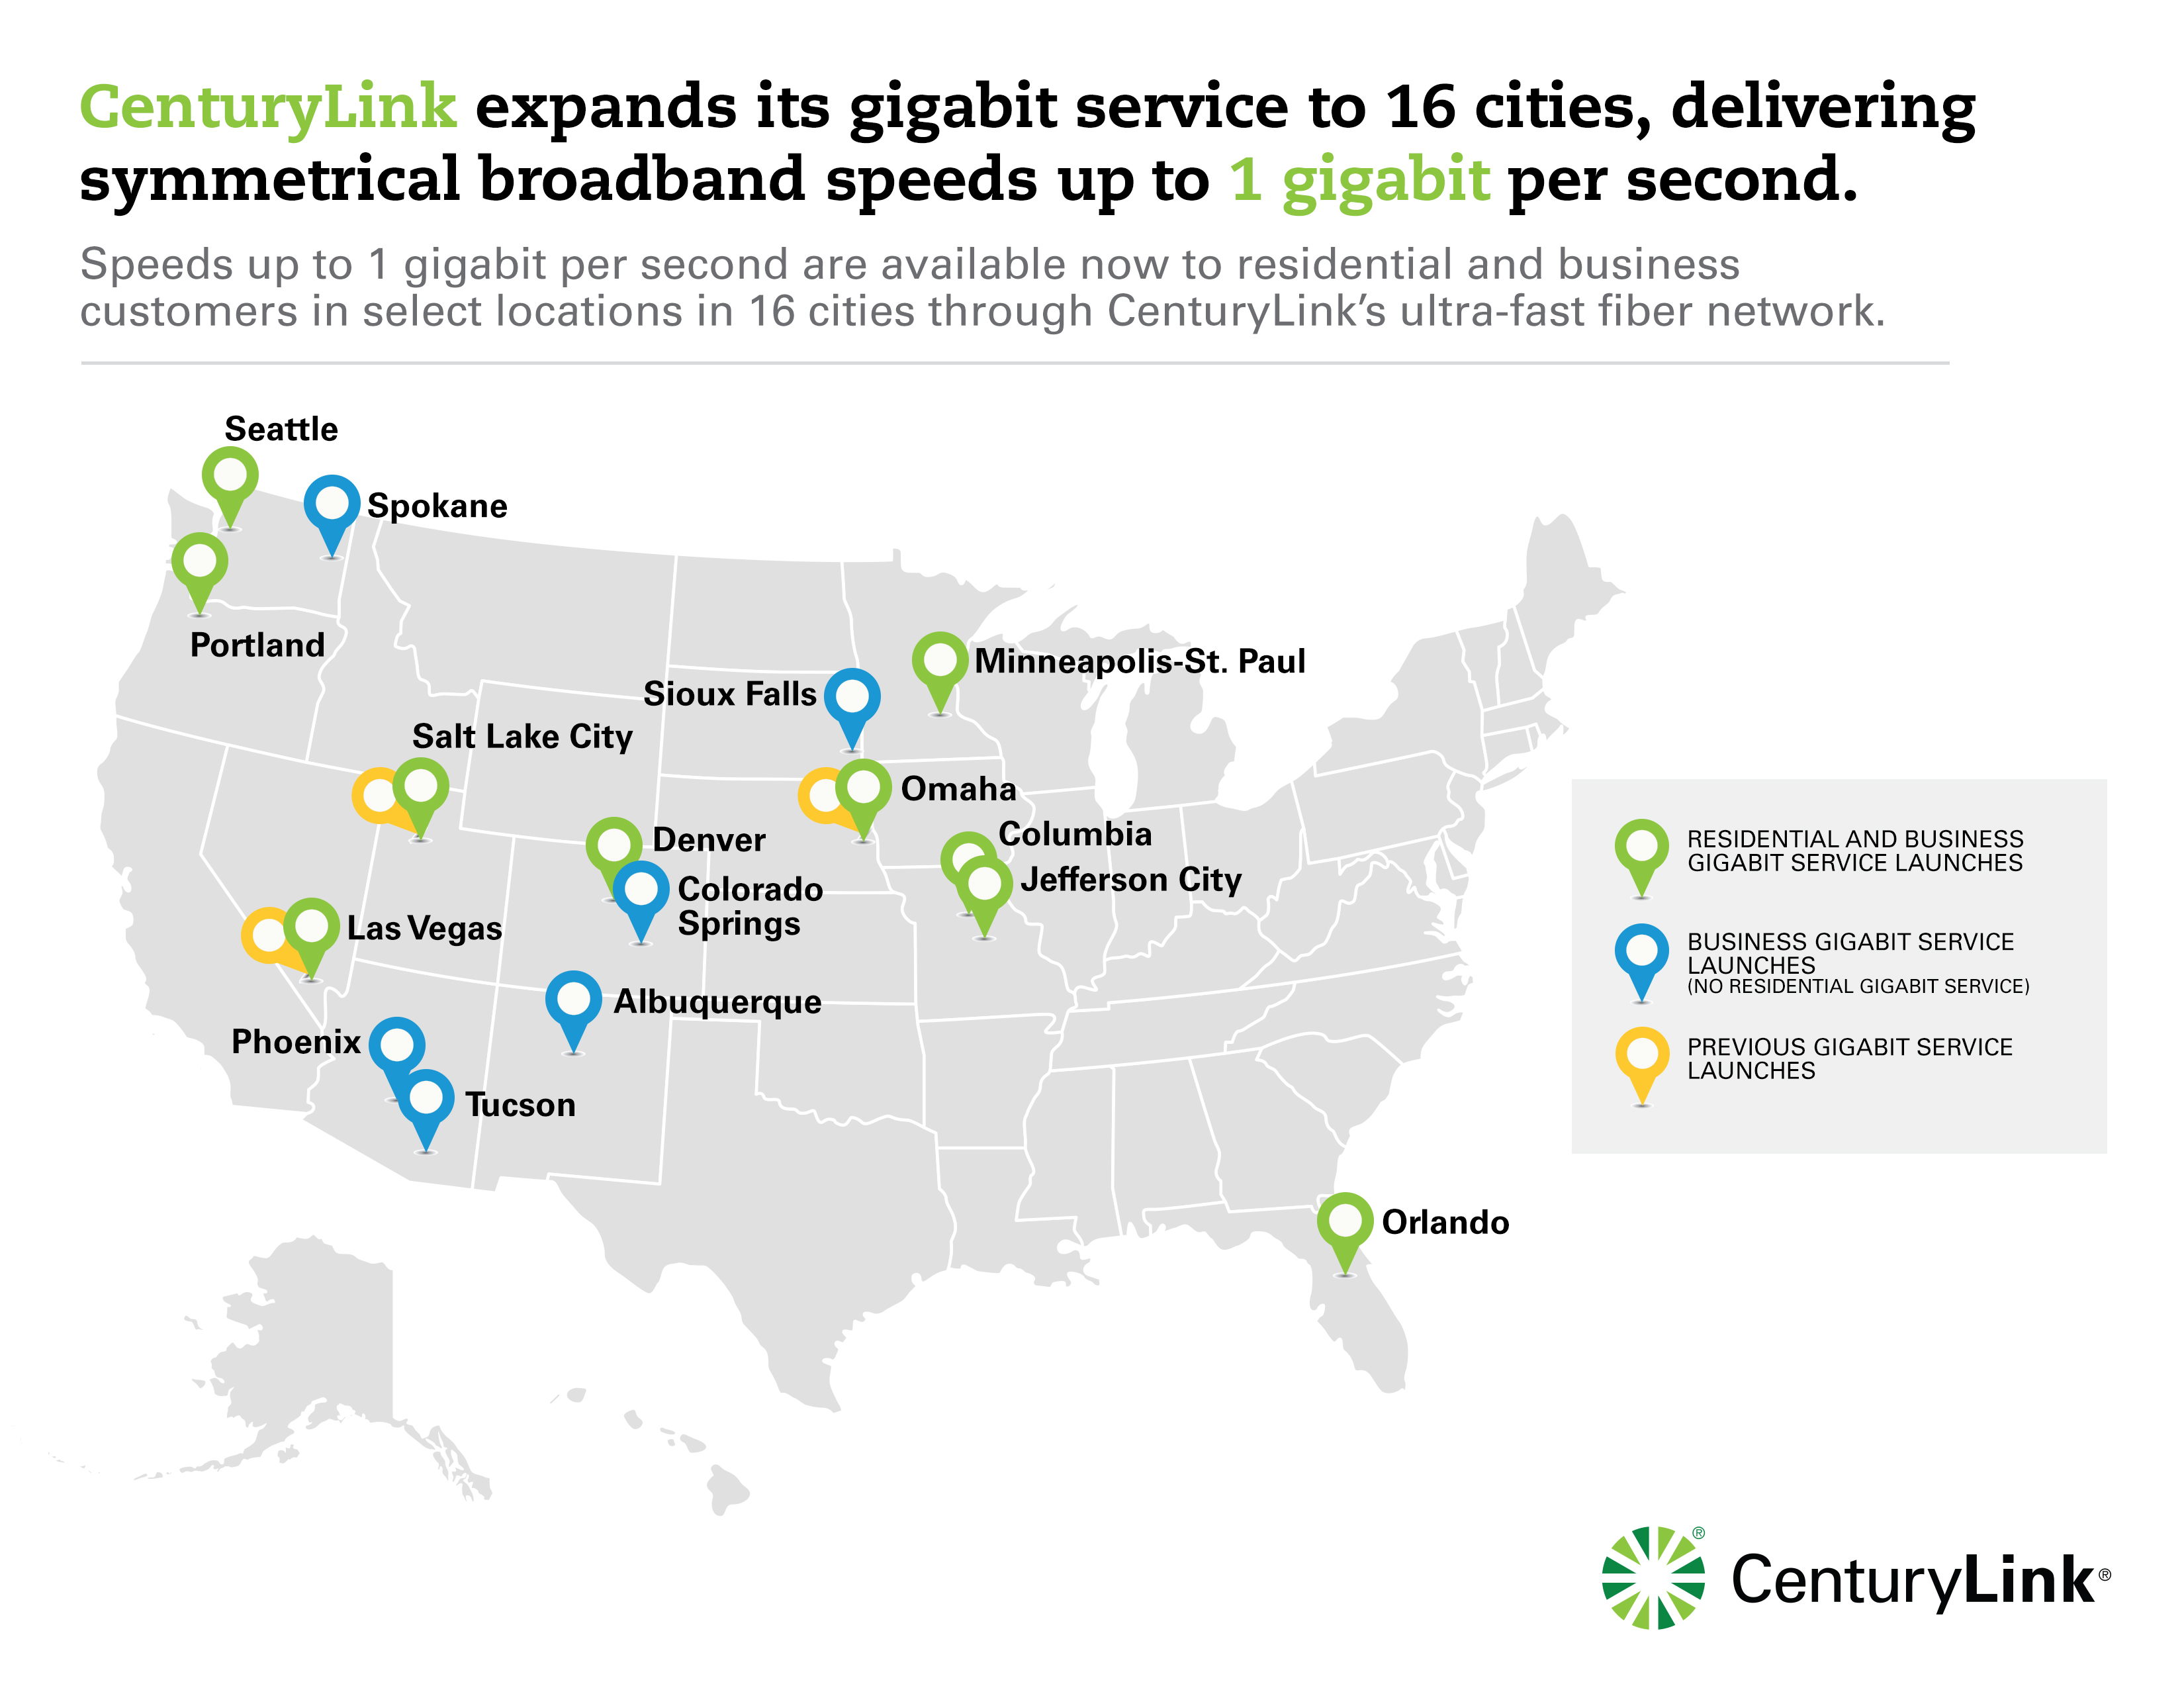 centurylink gigabit multi-city stealth launch - telecompetitor